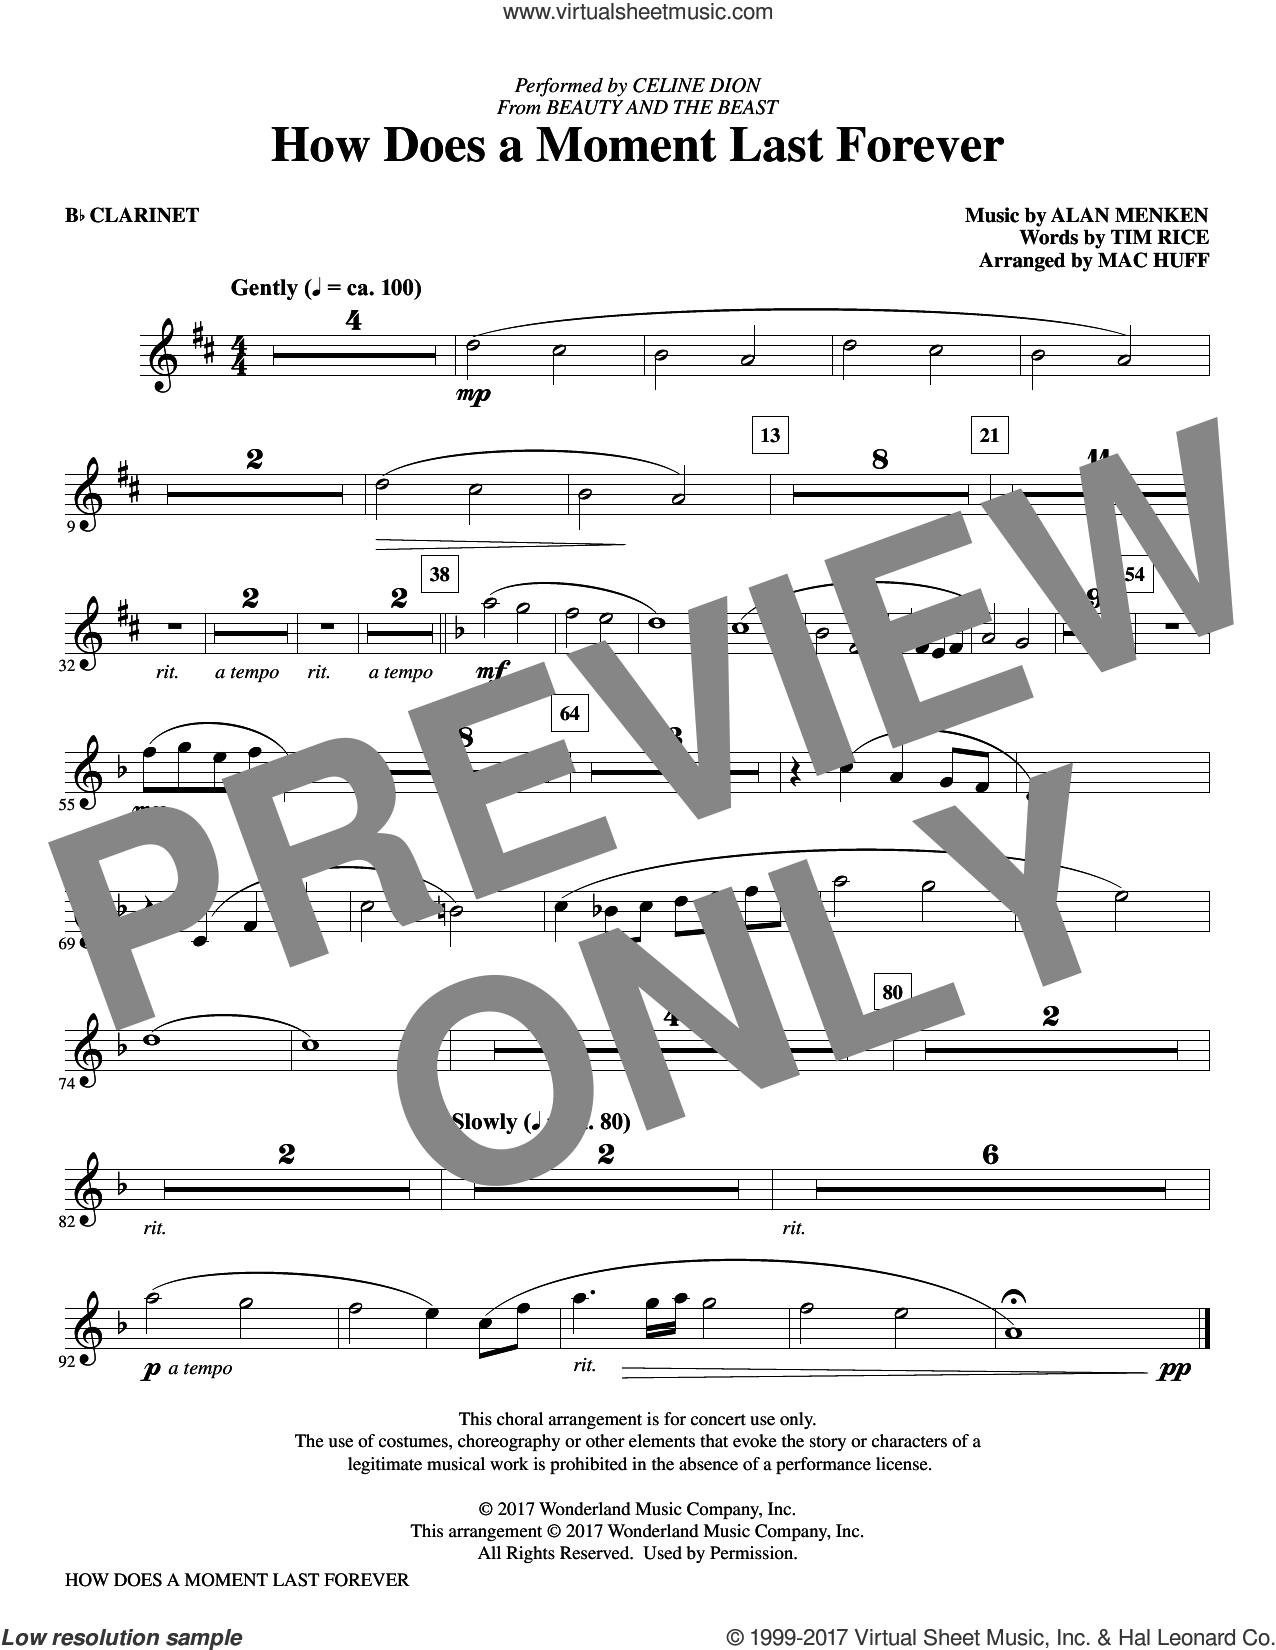 How Does a Moment Last Forever (complete set of parts) sheet music for orchestra/band by Mac Huff, Alan Menken and Tim Rice, intermediate skill level